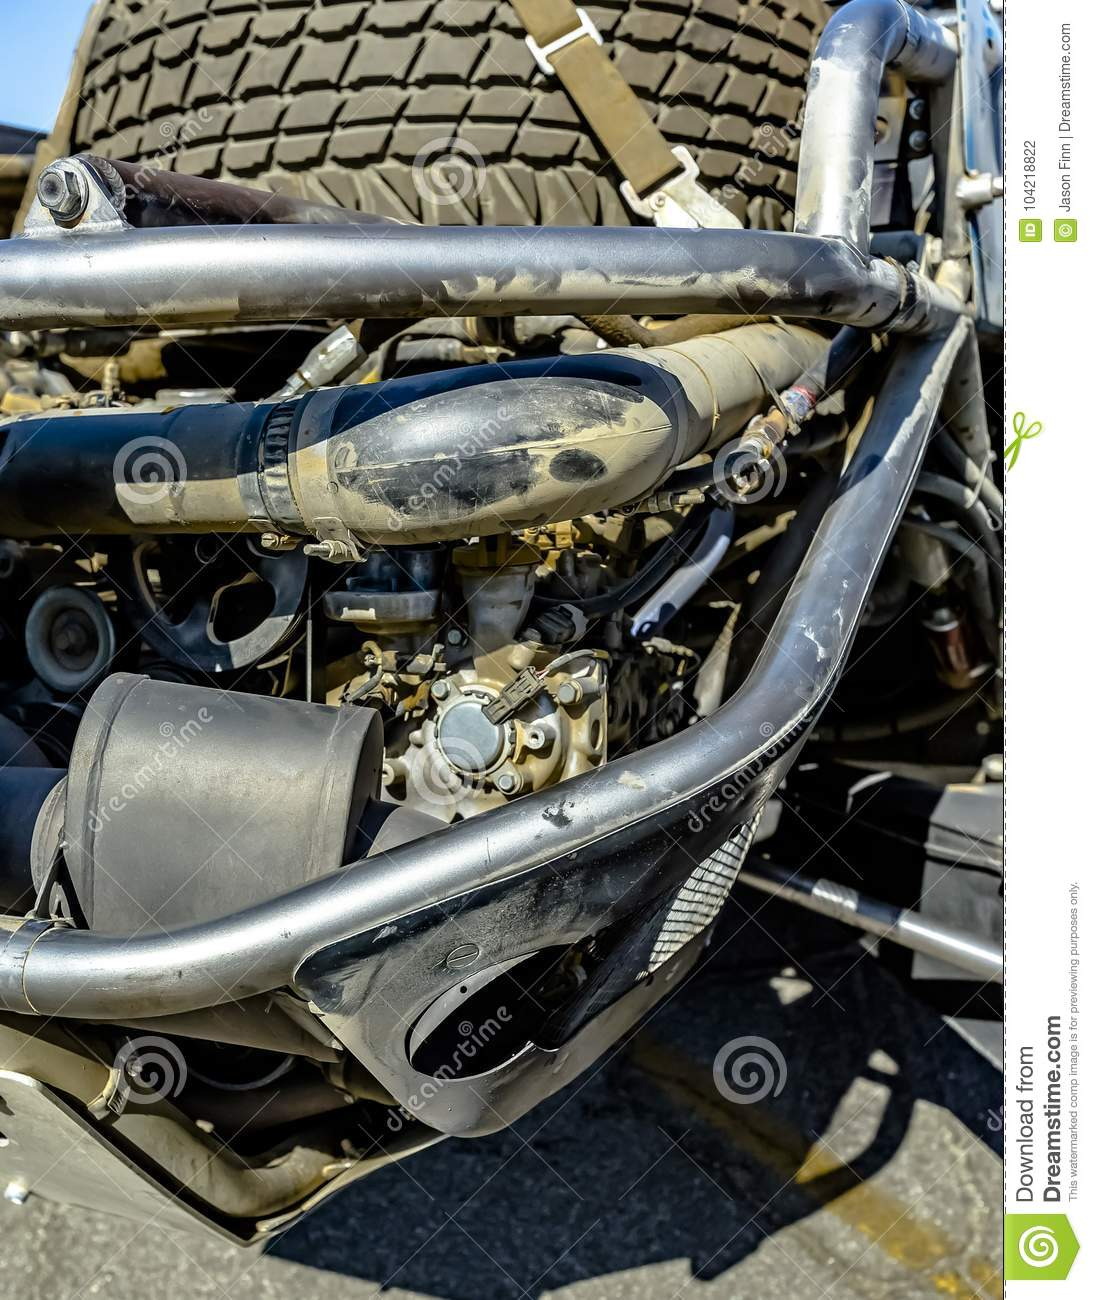 Car Engine In The Back With The Spare Tire Stock Photo - Image of ...